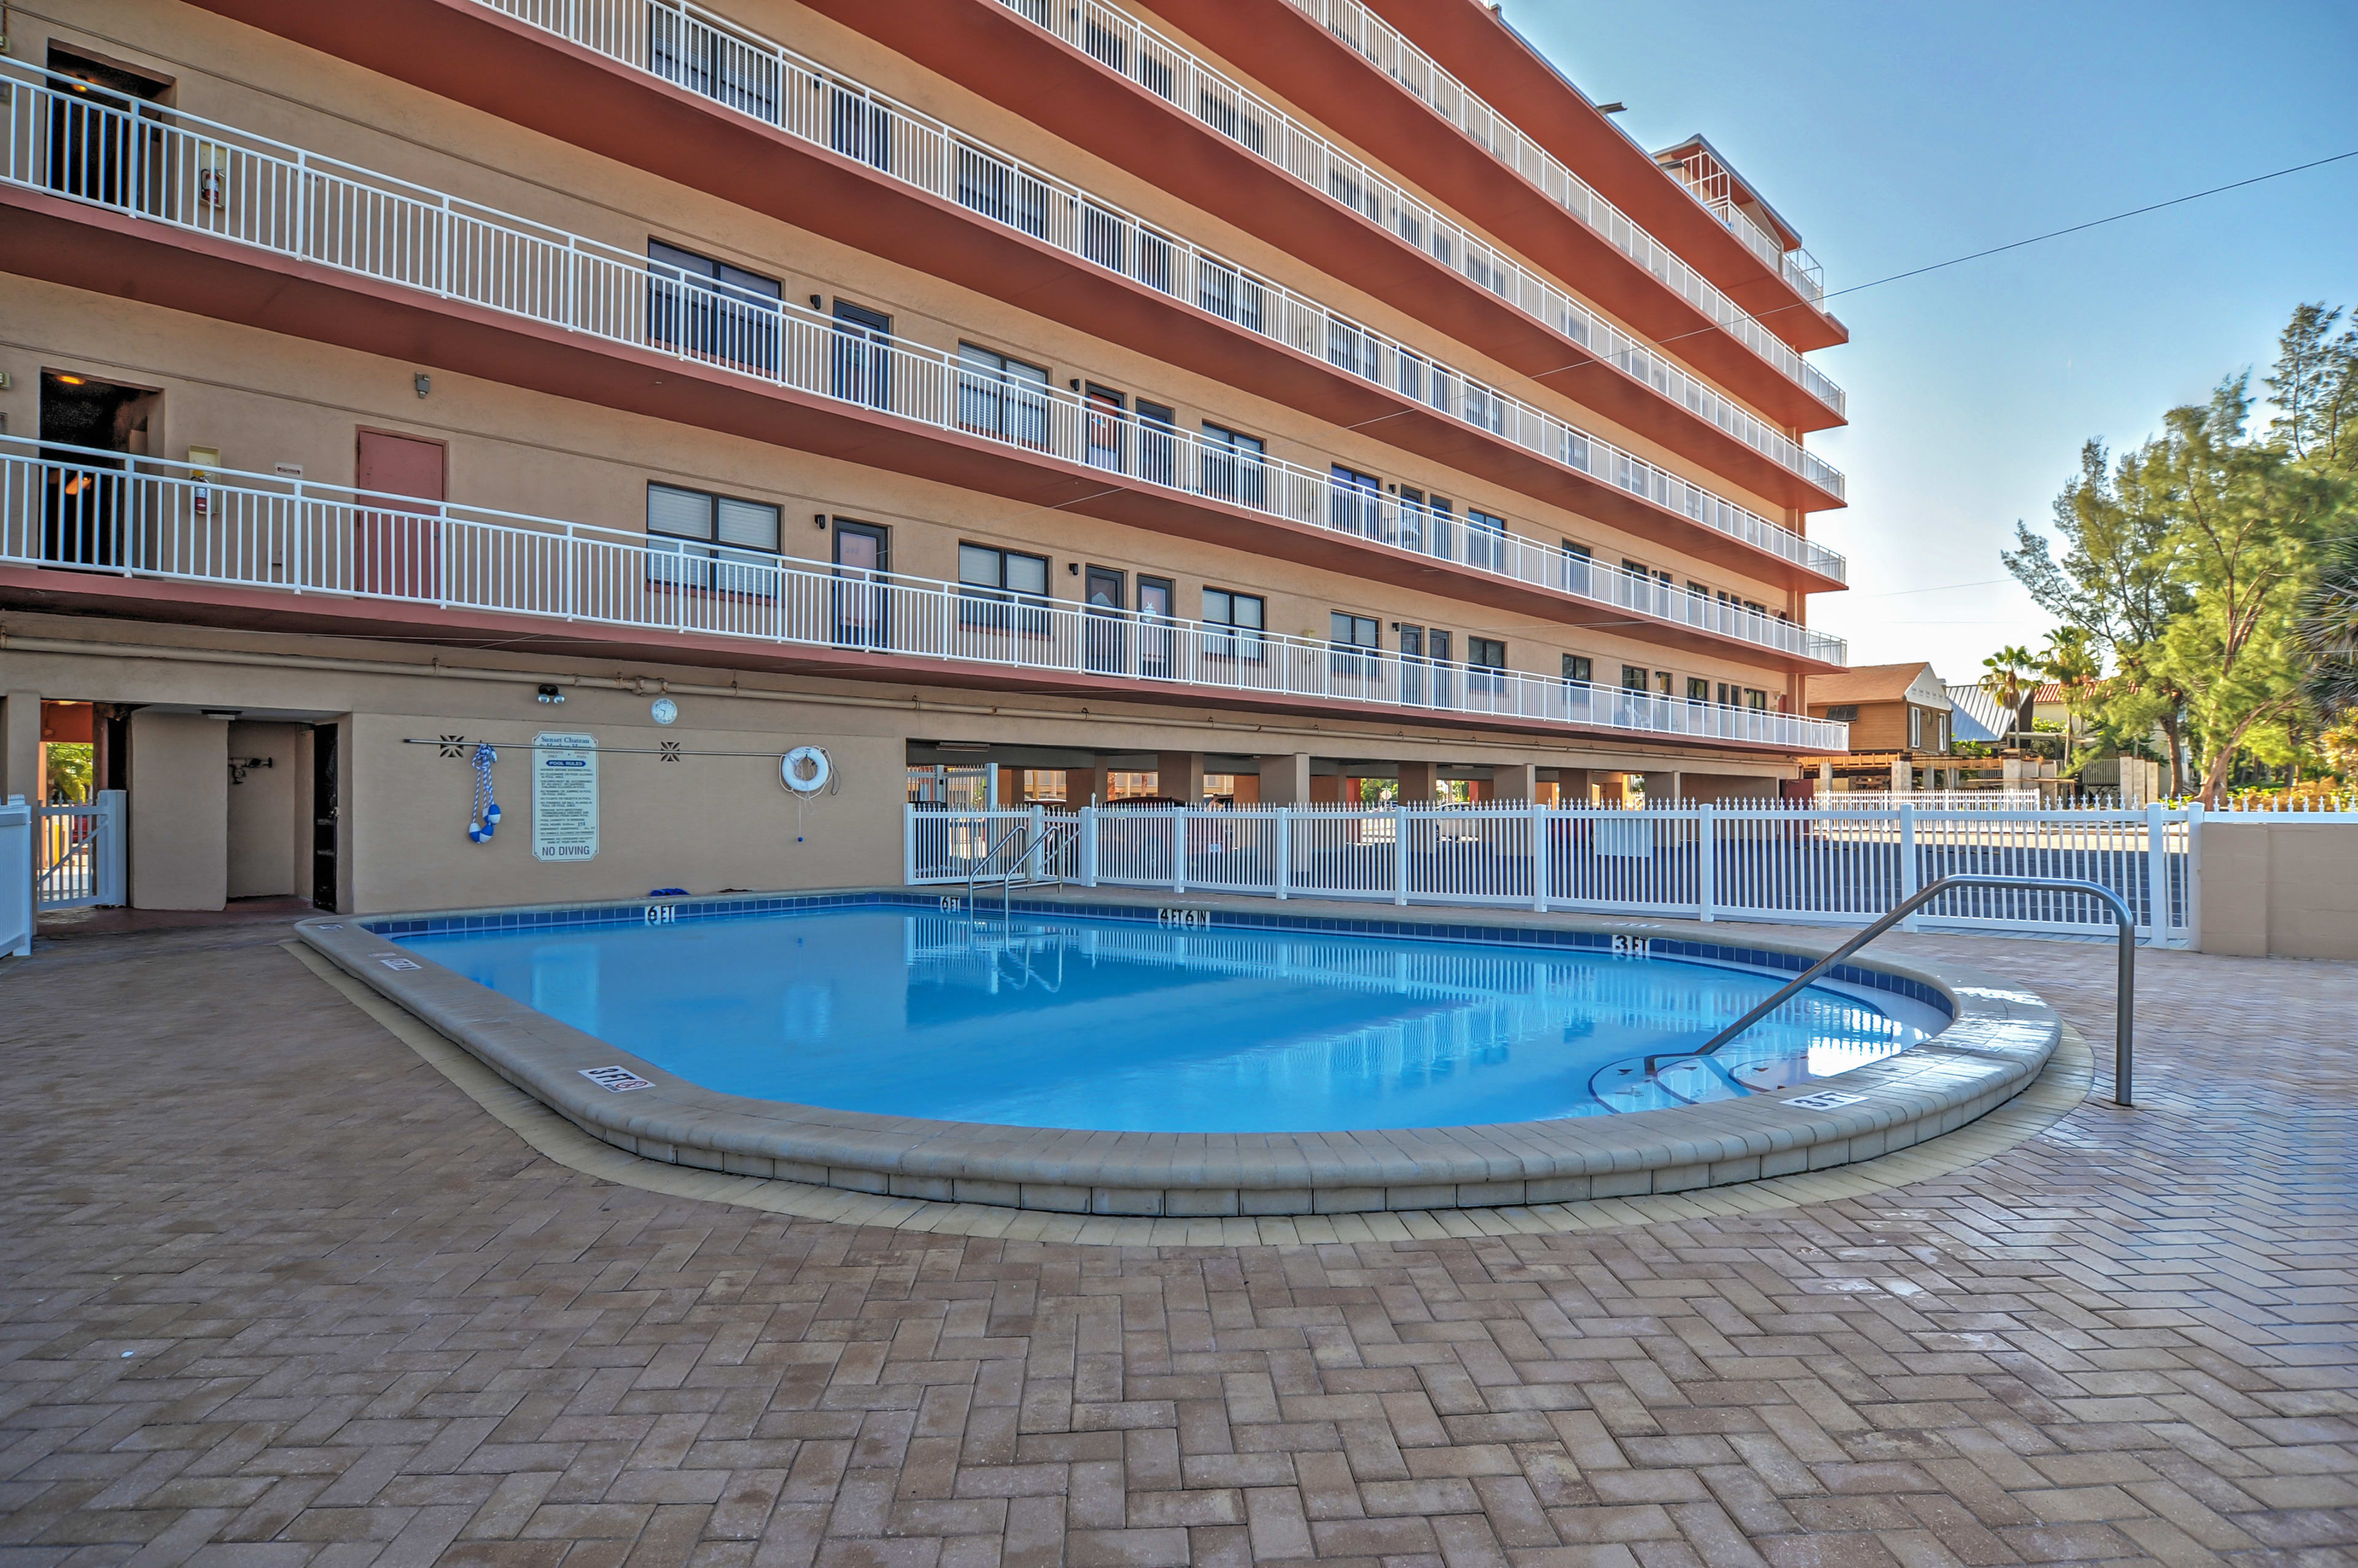 If you don't like the saltwater, enjoy the condominium's heated pool.